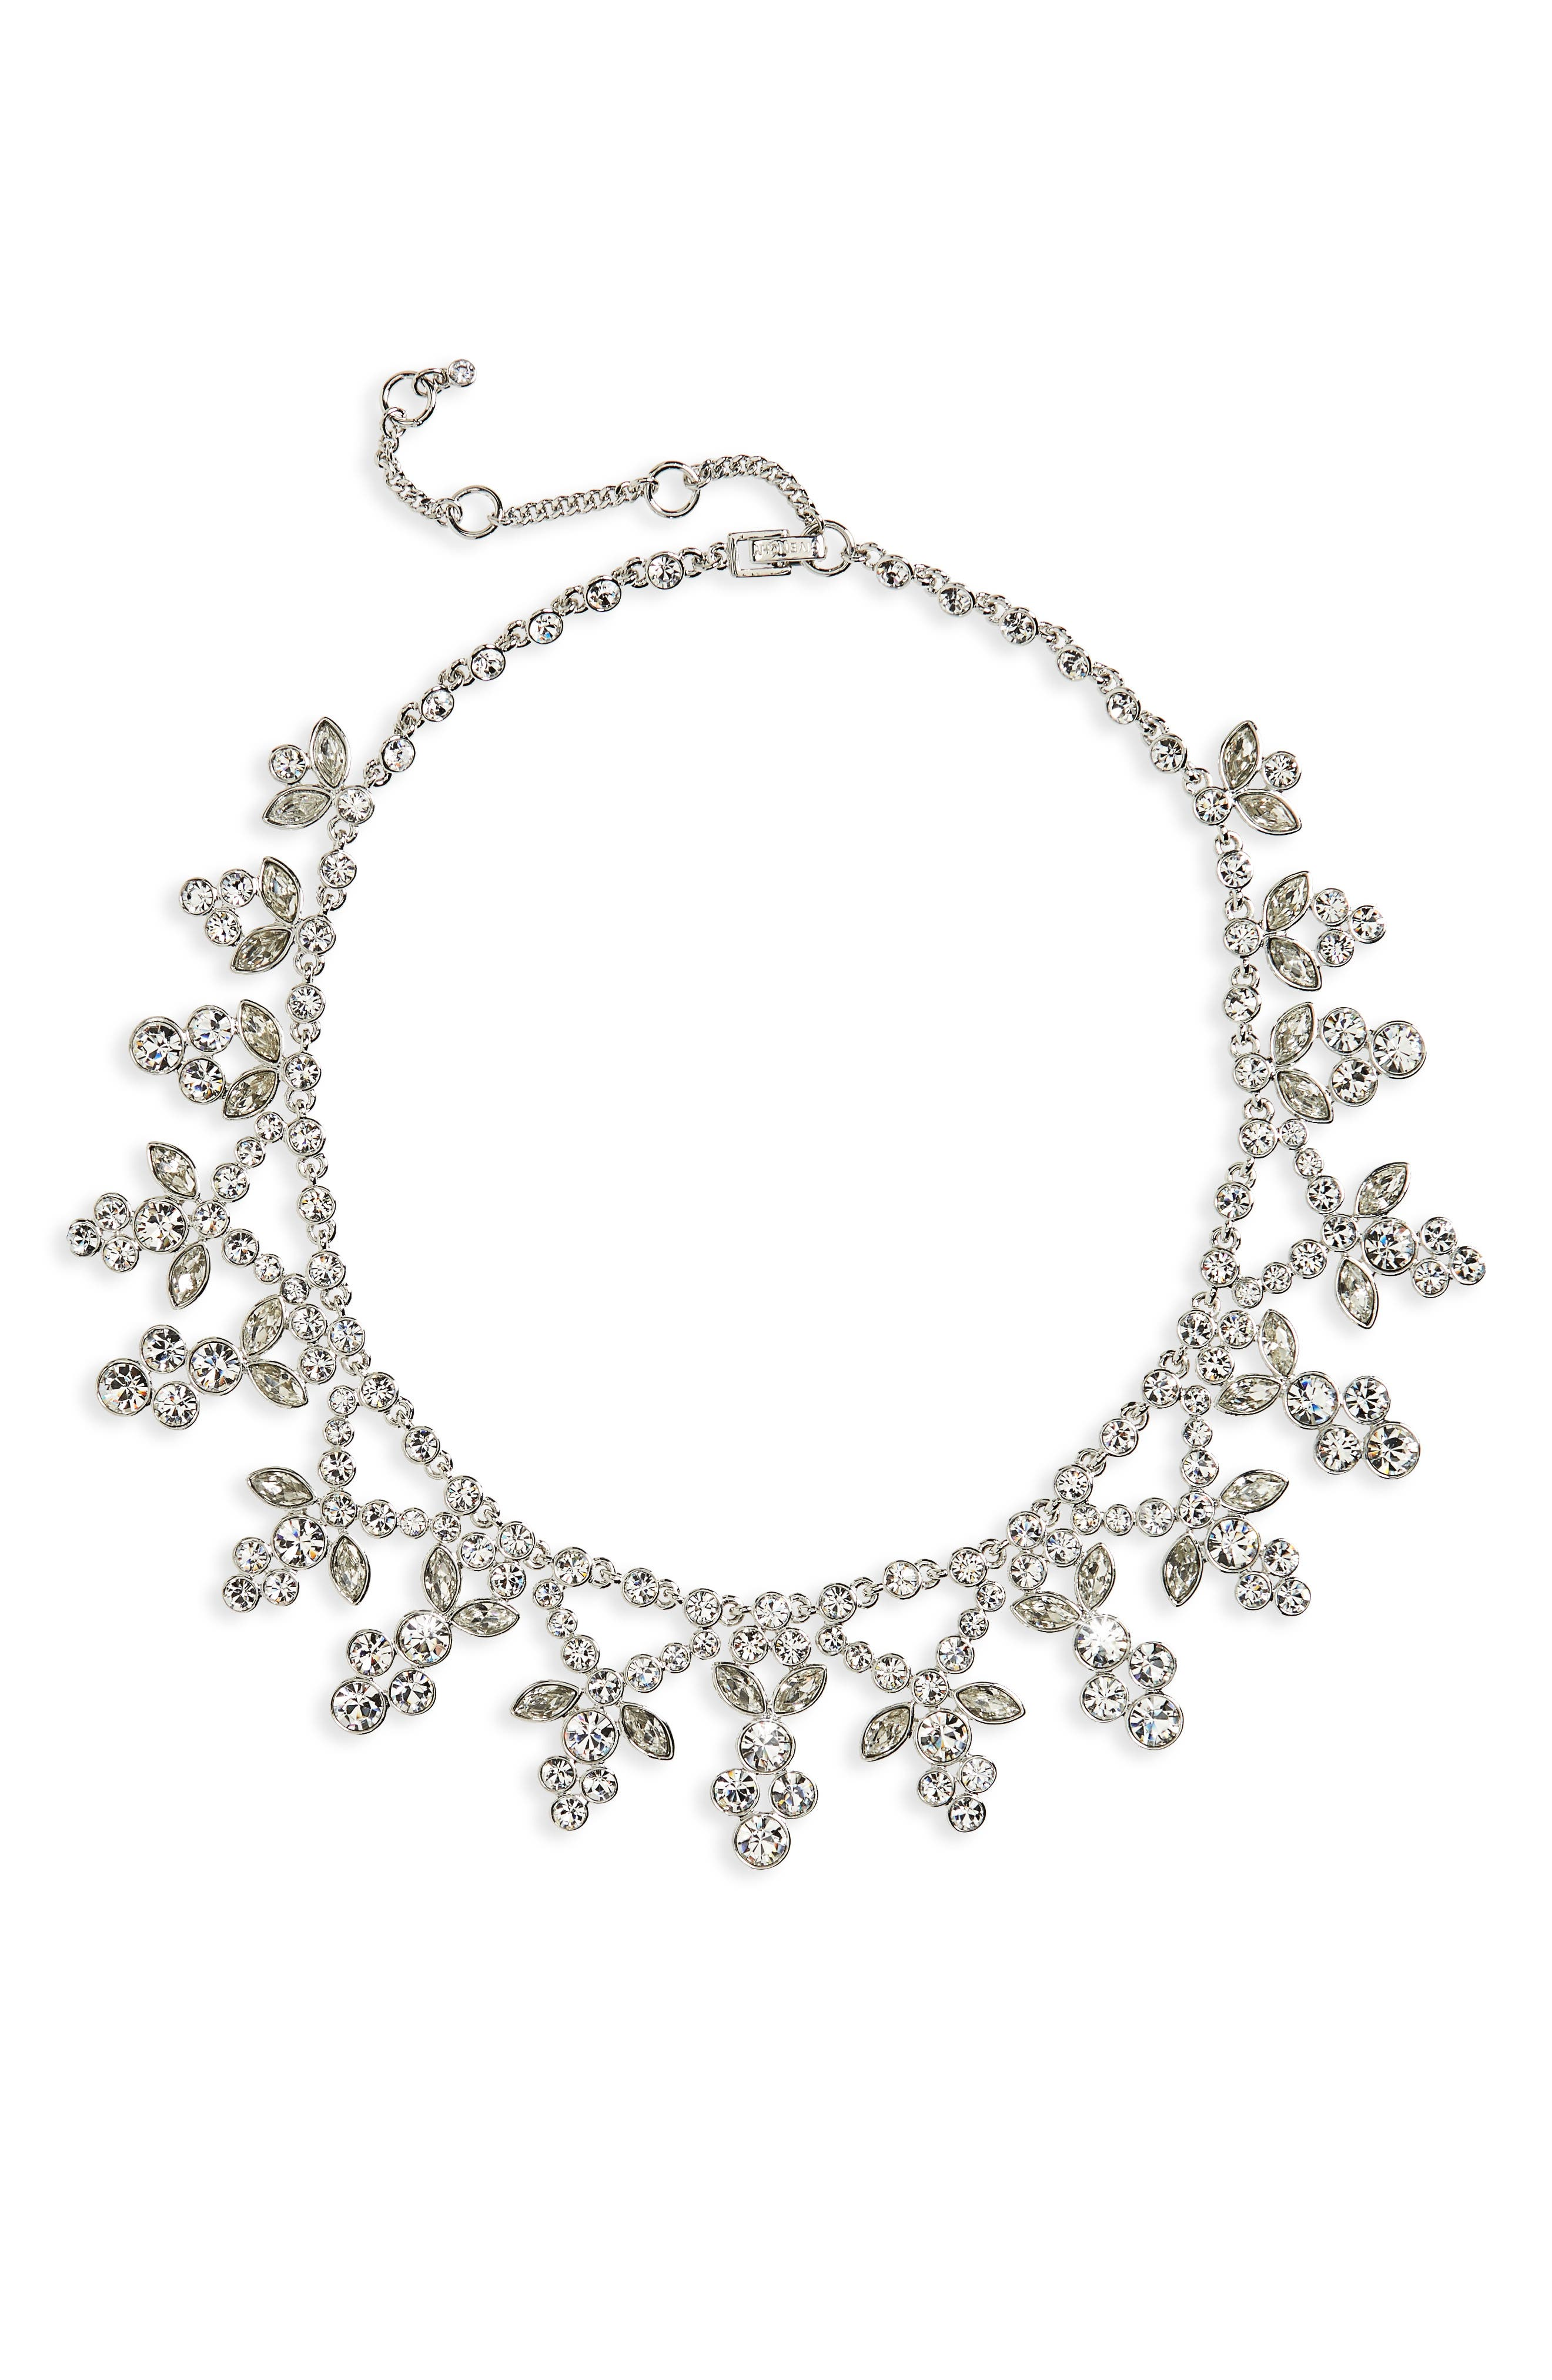 Givenchy Sydney Drama Collar Necklace